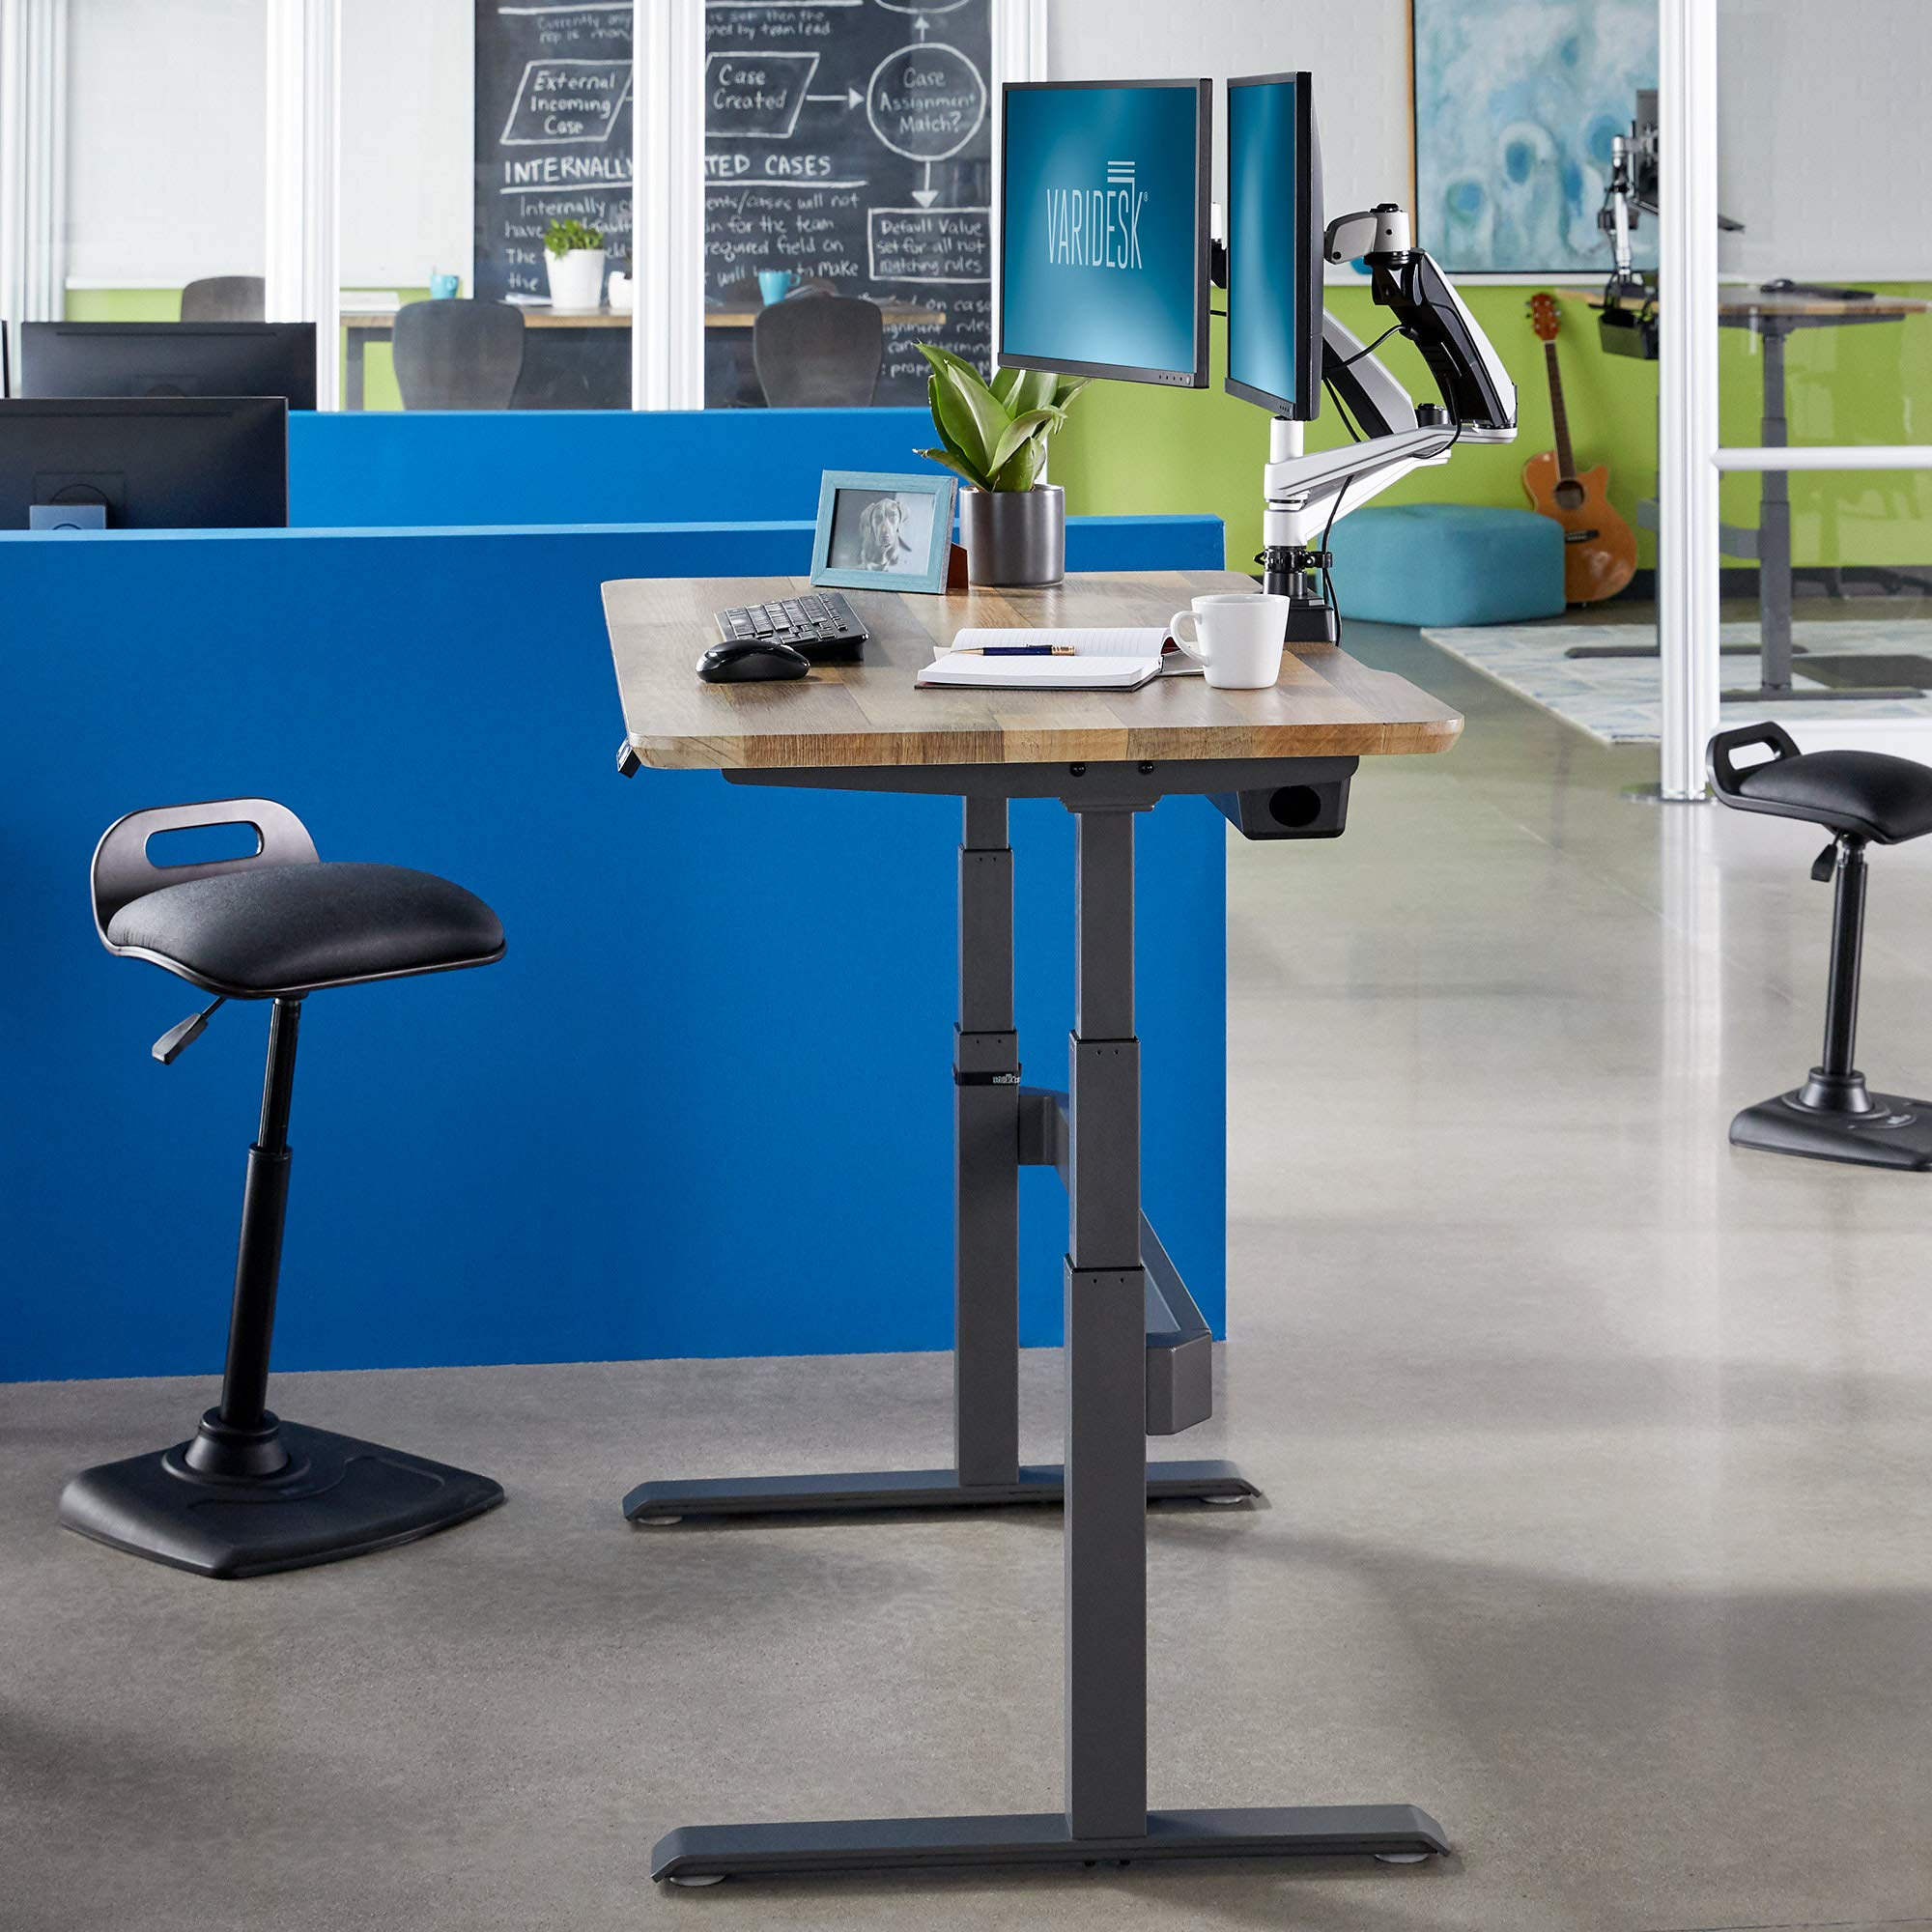 Phenomenal Varidesk Full Electric Desk Prodesk 60 Electric Reclaimed Wood 3 Button Memory Settings Alphanode Cool Chair Designs And Ideas Alphanodeonline